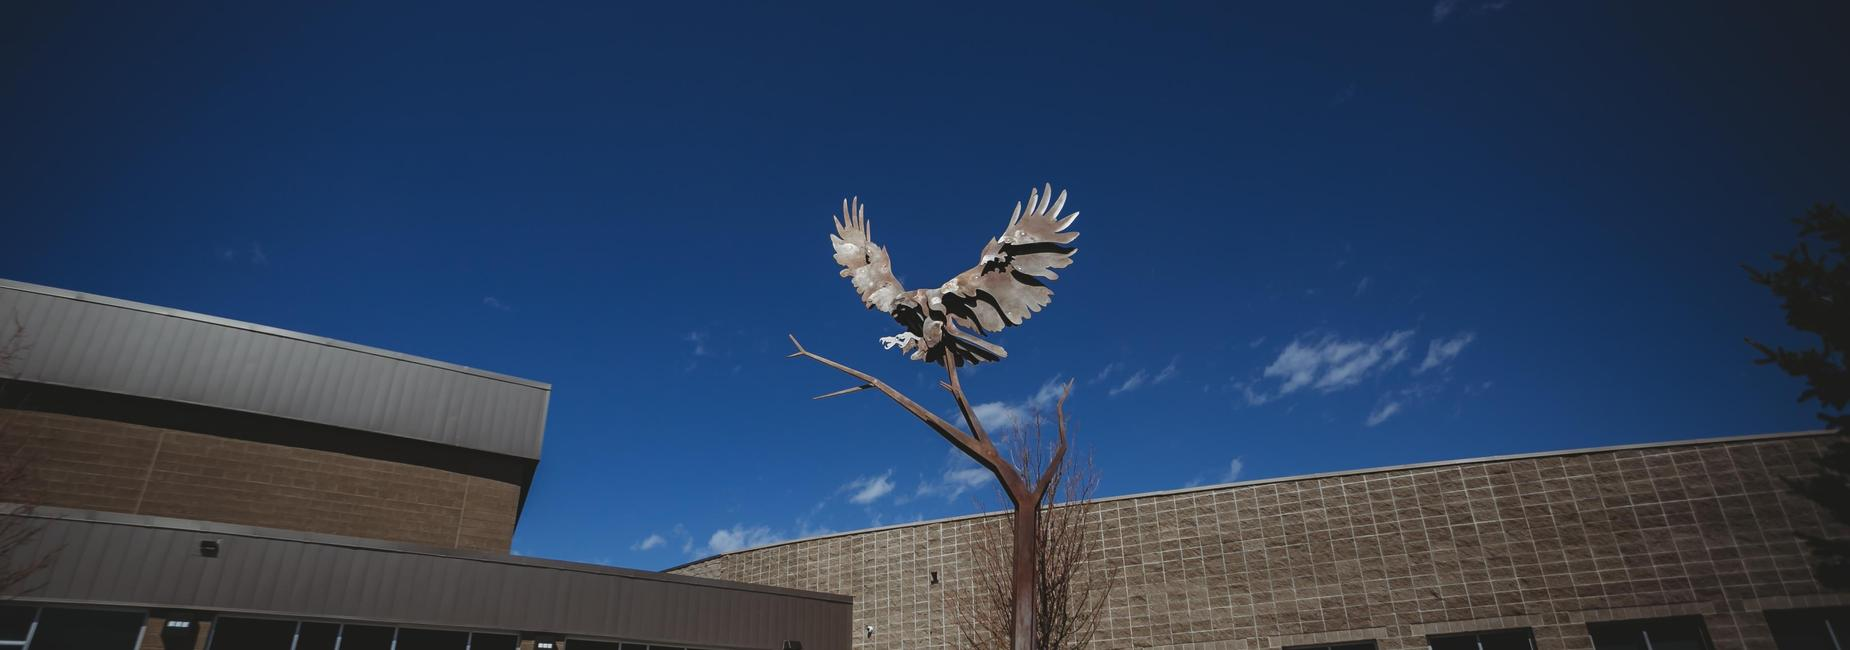 Hawk statue with sky background